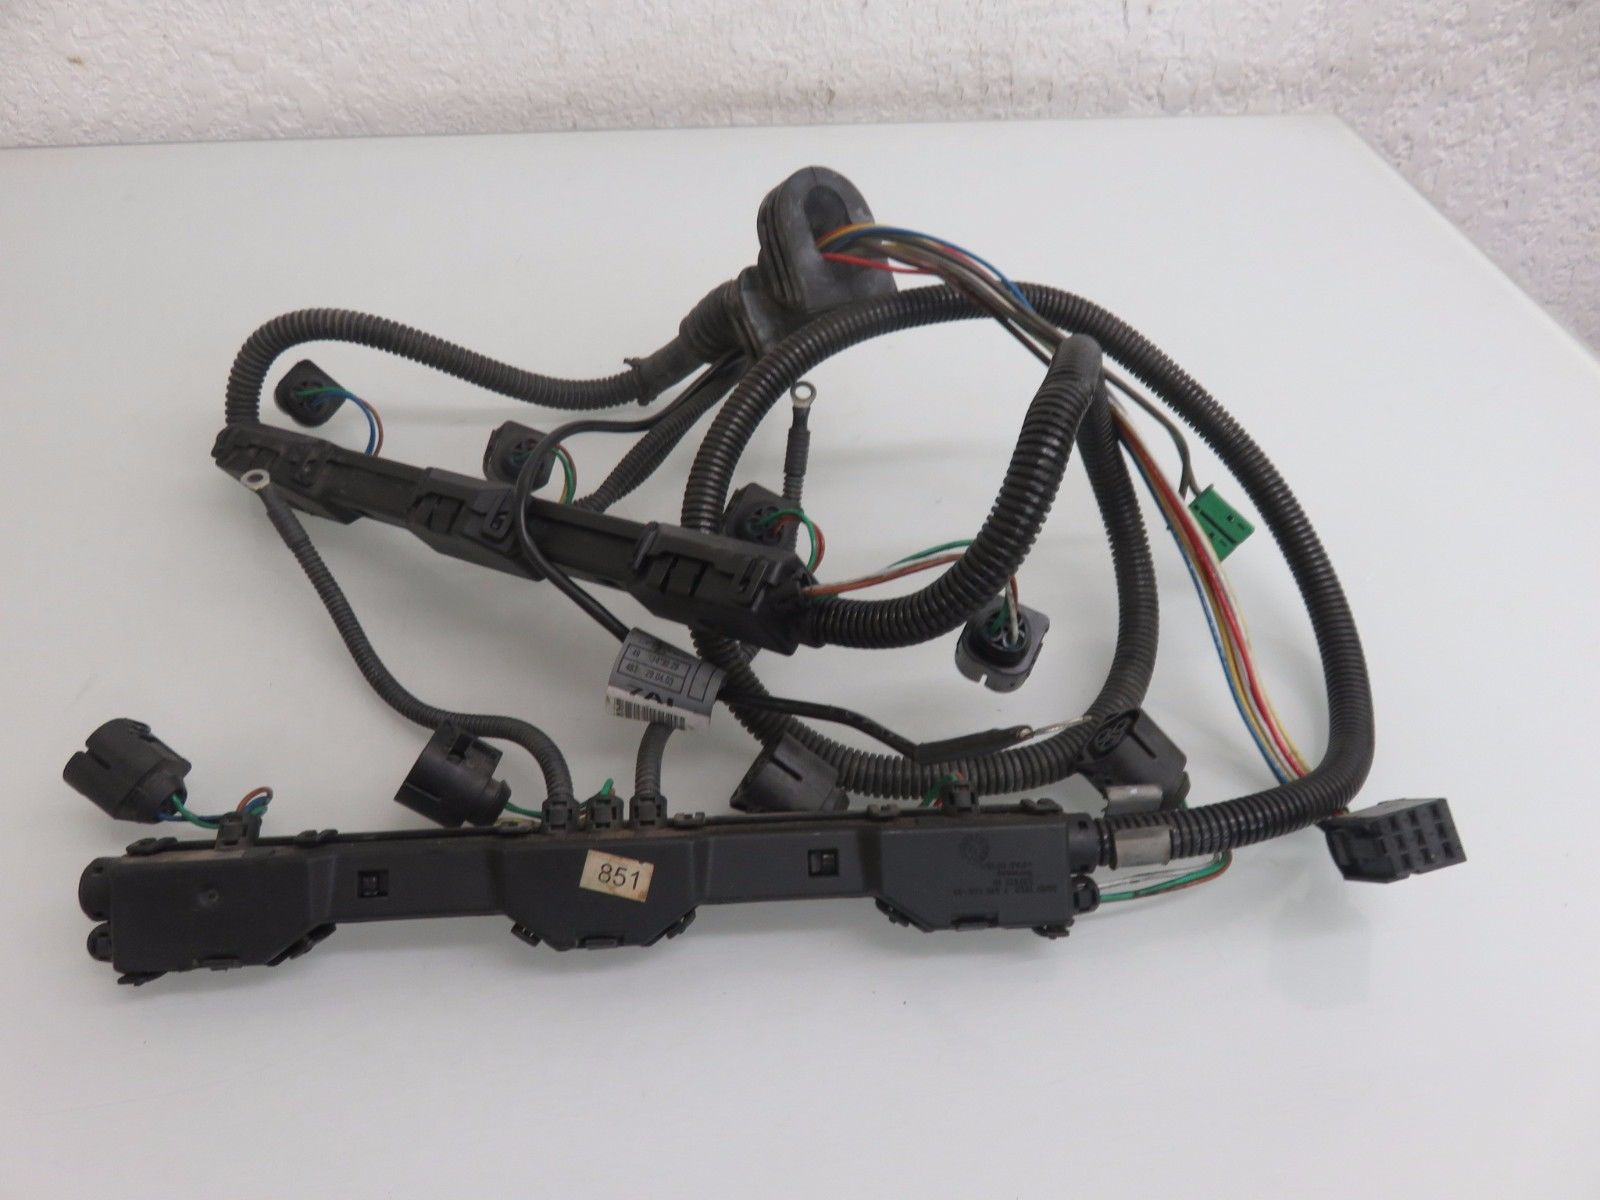 02-05 BMW E65 E66 745i 745Li IGNITION COIL WIRE WIRING HARNESS OEM on 03 bmw z3, 03 bmw 750i, 03 bmw m5, 03 bmw 330ci, 03 bmw 325xi, 03 bmw z4, 03 bmw 325ci, 03 bmw x5 m, 03 bmw z8, 03 bmw 750li,